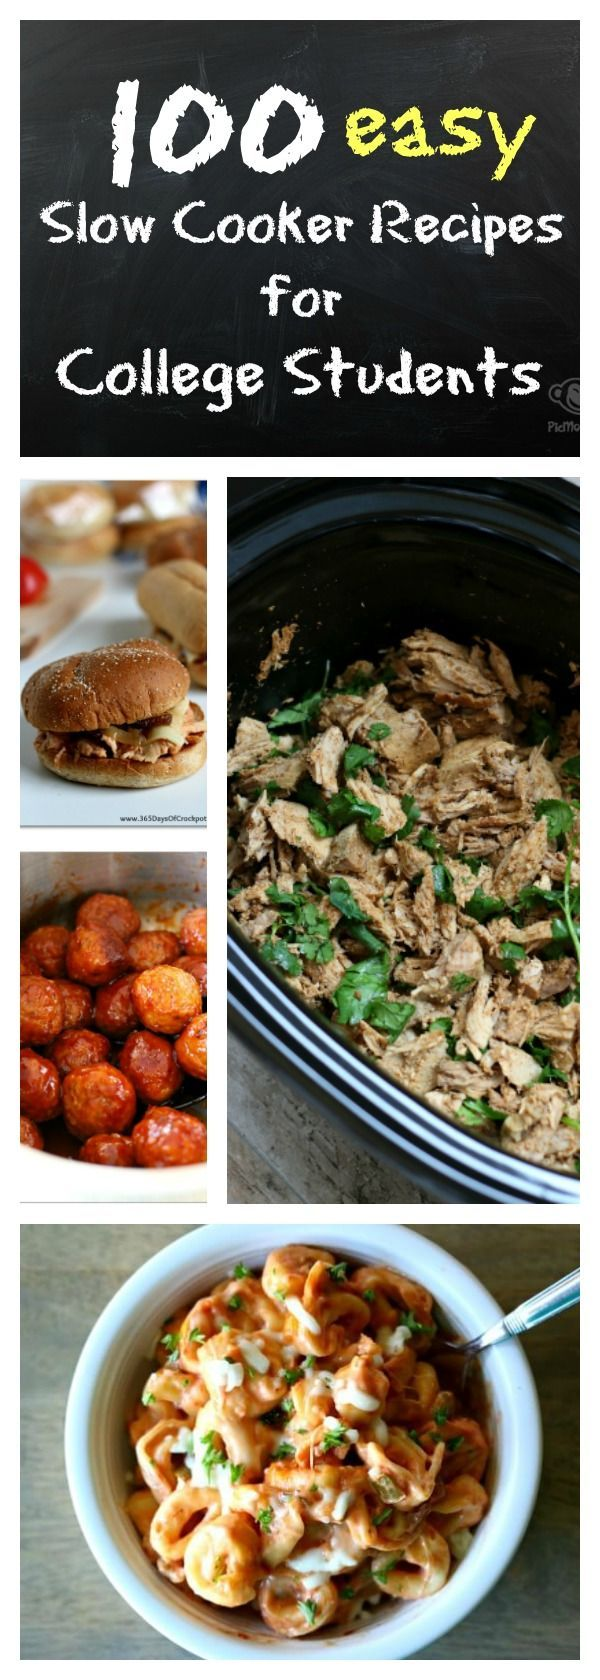 100 slow cooker recipes for college students. Slow cooker recipes with few�